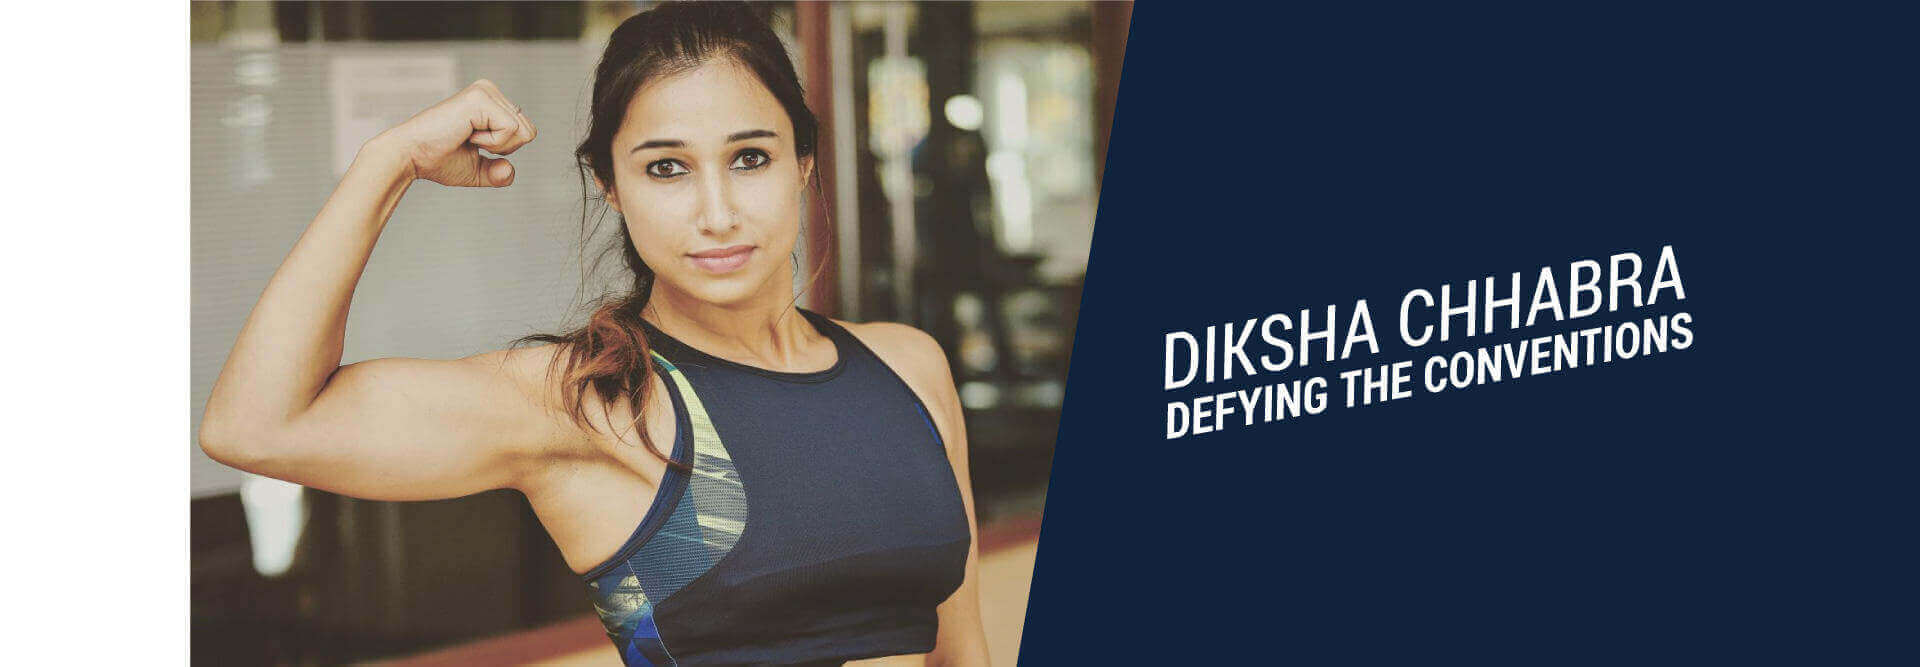 Diksha Chhabra - Defying the Conventions